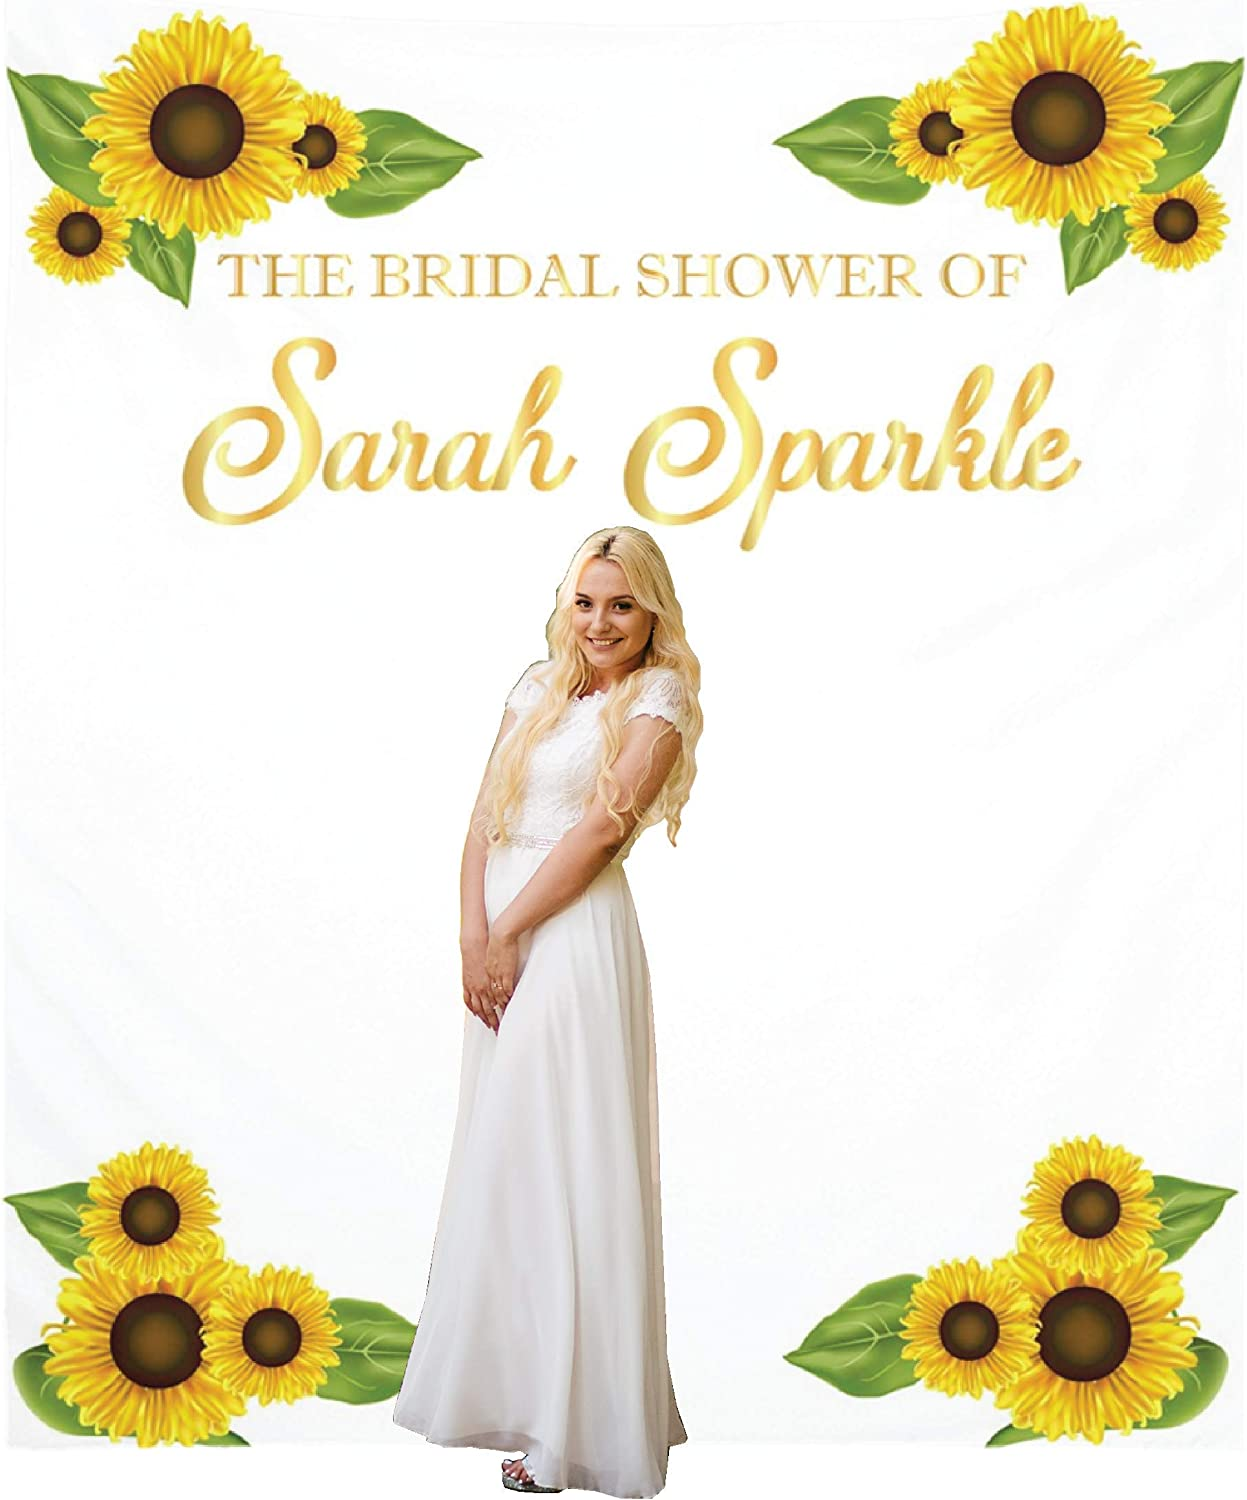 Amazon Com Personalized Bridal Shower Fabric Backdrop Wedding Decoration Photo Booth Backdrops Customized Birthday Party Banner Sunflowers Custom Sign Decorations Reception Ceremony X Large 7 3x8 7 Feet Health Personal Care